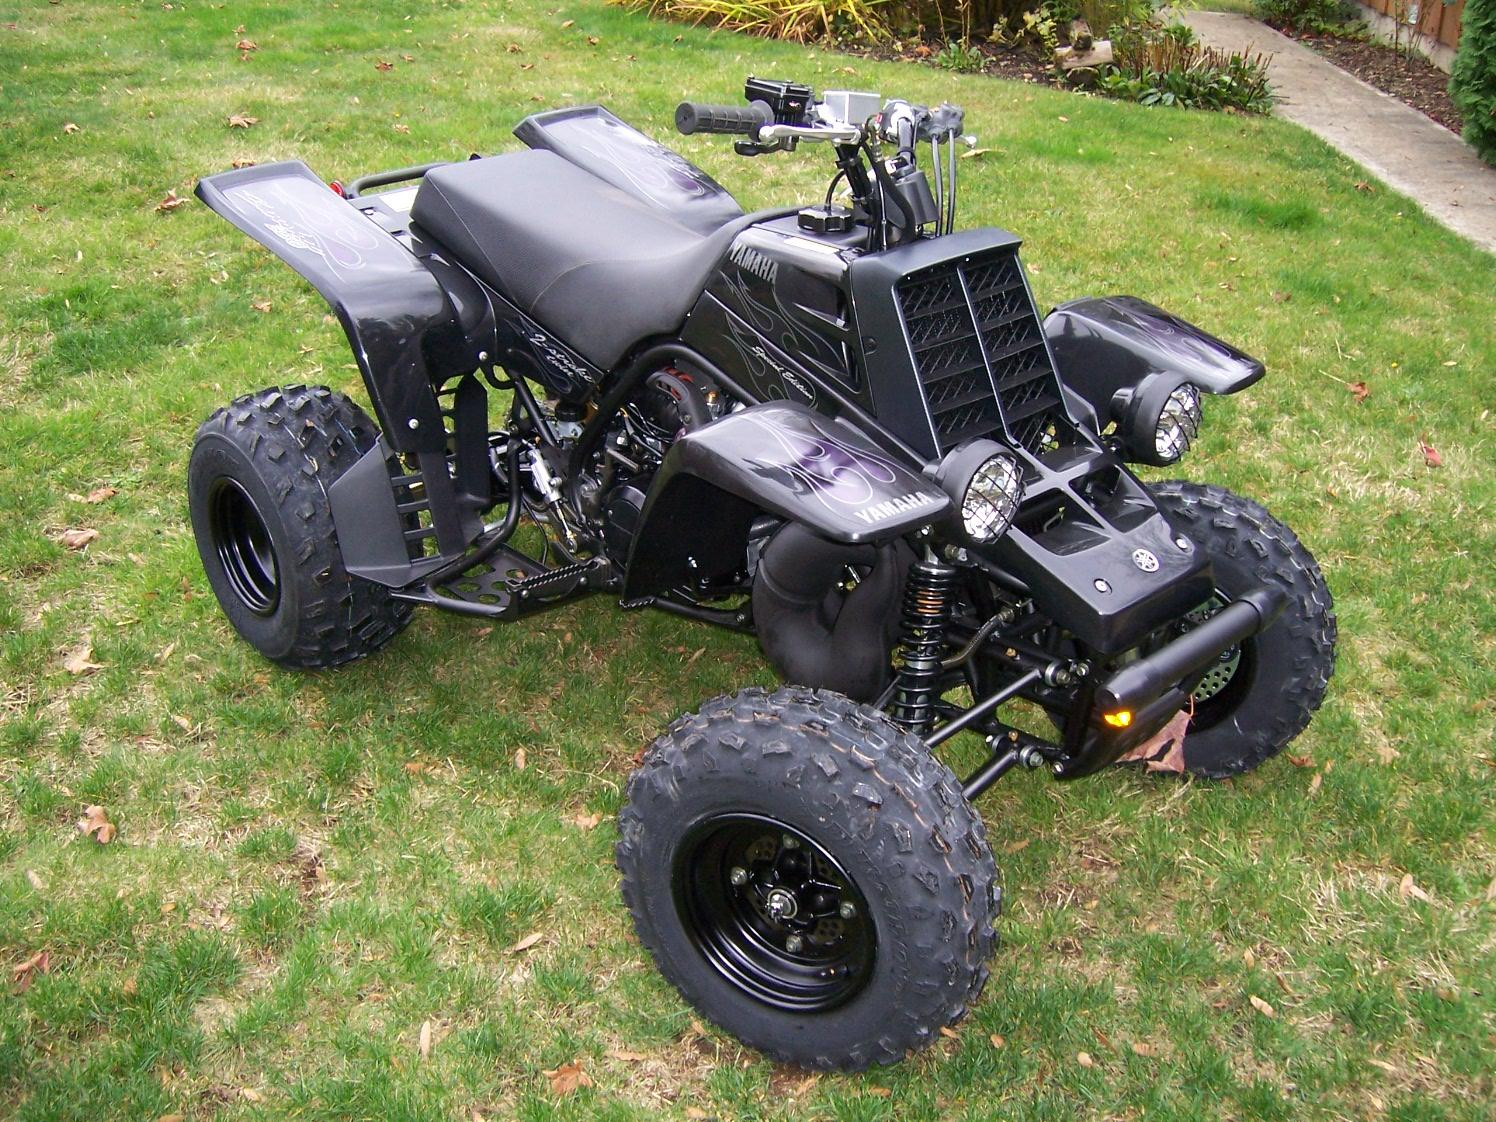 Yamaha YFZ Banshee photos - PhotoGallery with 8 pics ...